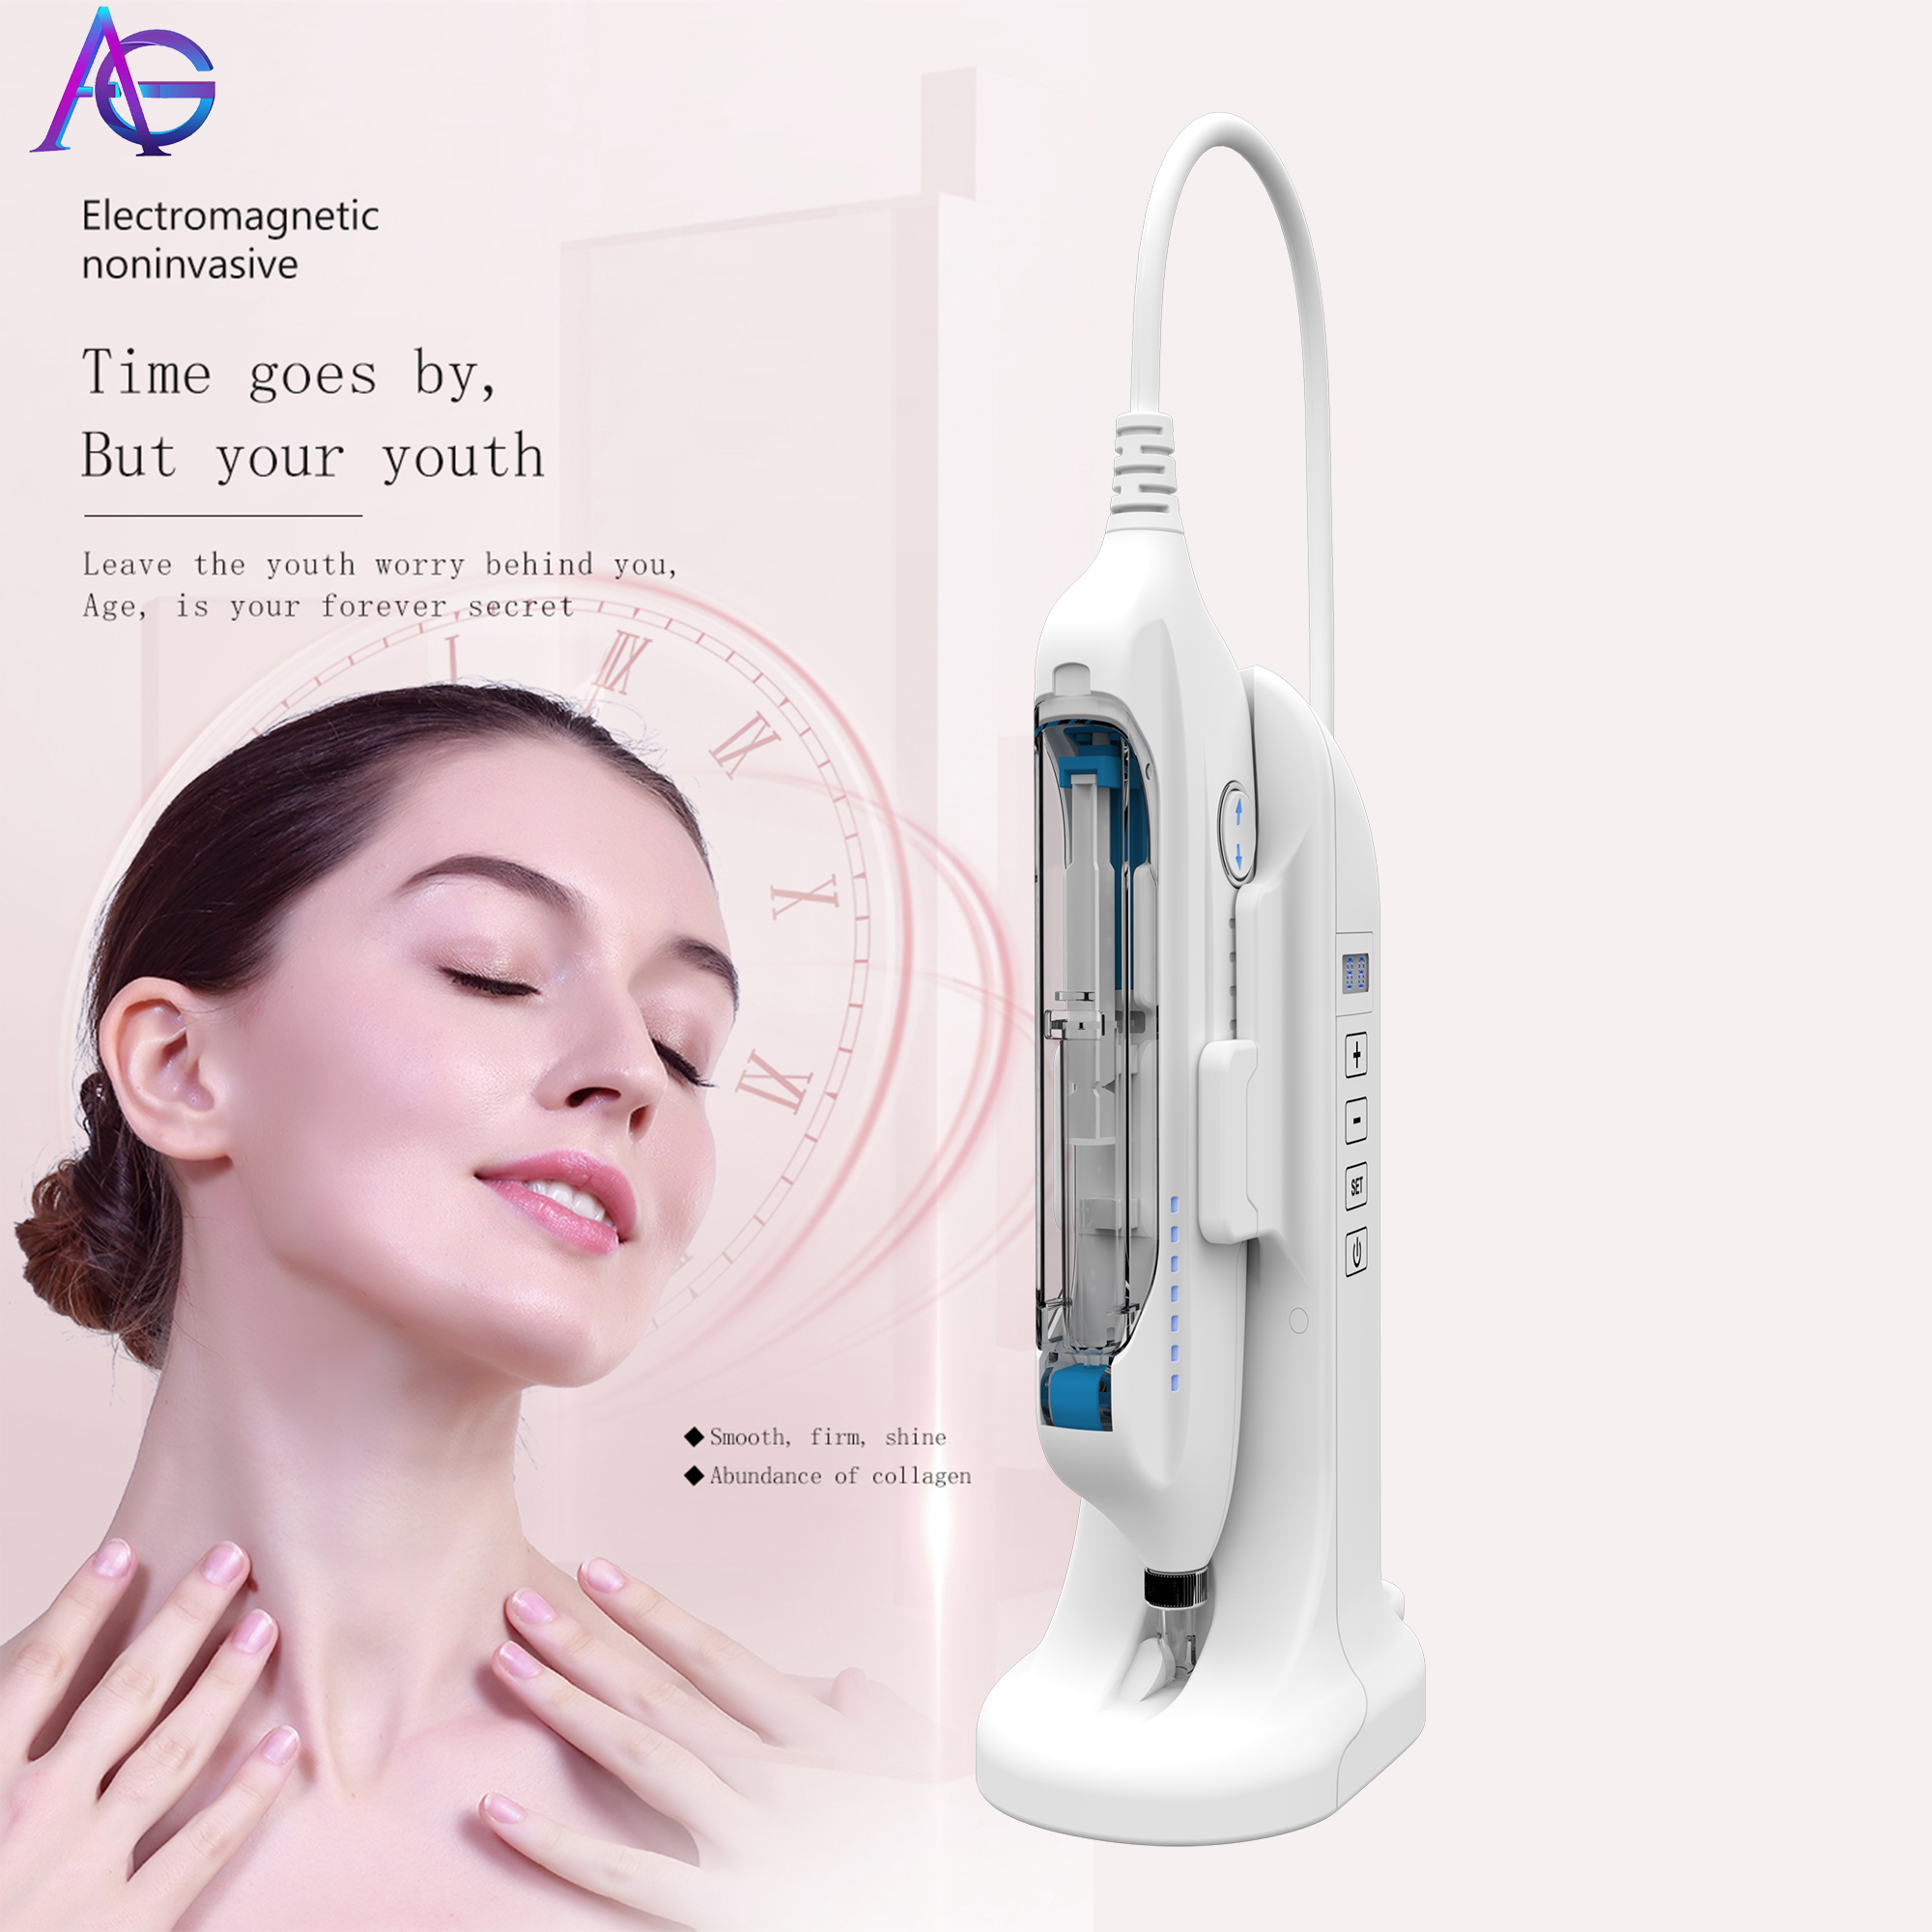 Tecnologias Nuevas 2019  Weishu Maso Needle Free Facial Lifting Injection EMS Beauty Machine Portable For Home And Salon Use